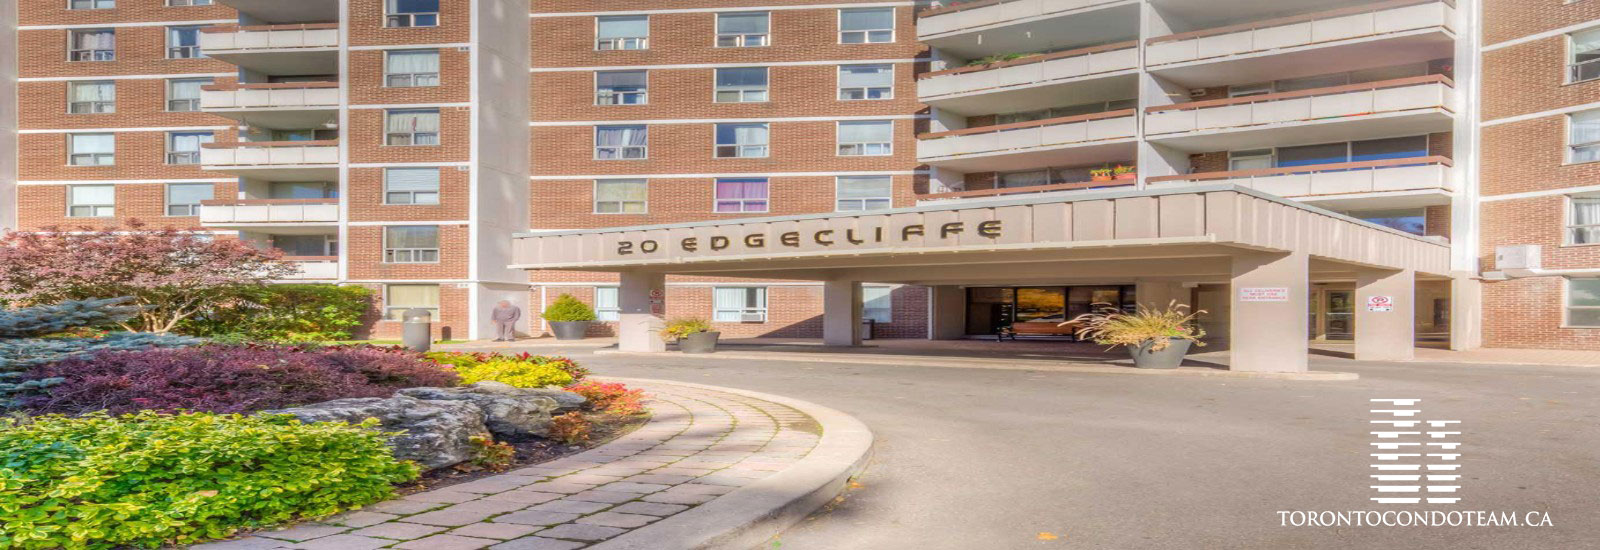 20 Edgecliff Golfway Condos For Sale